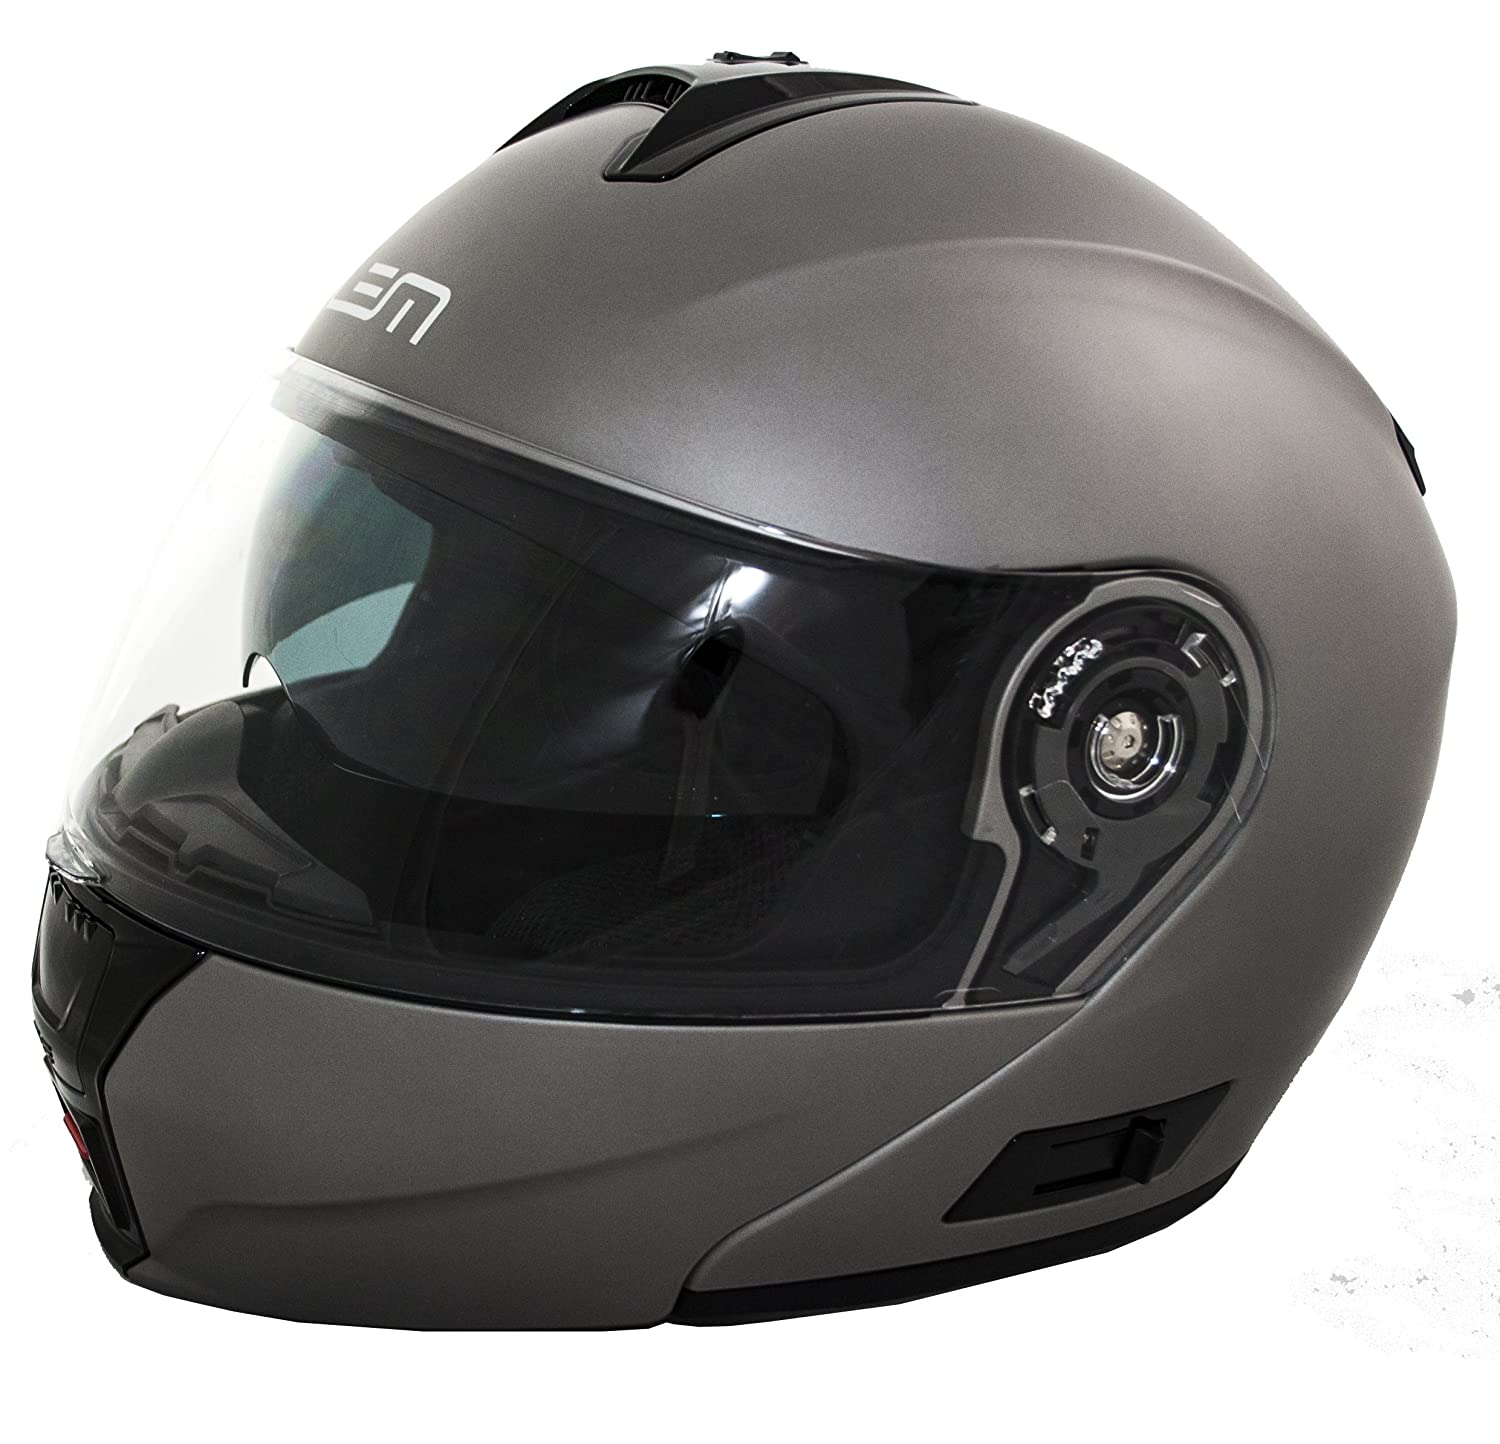 LEM - OPEN140XL/93 : LEM - OPEN140XL/93 : Casco Modular con ...